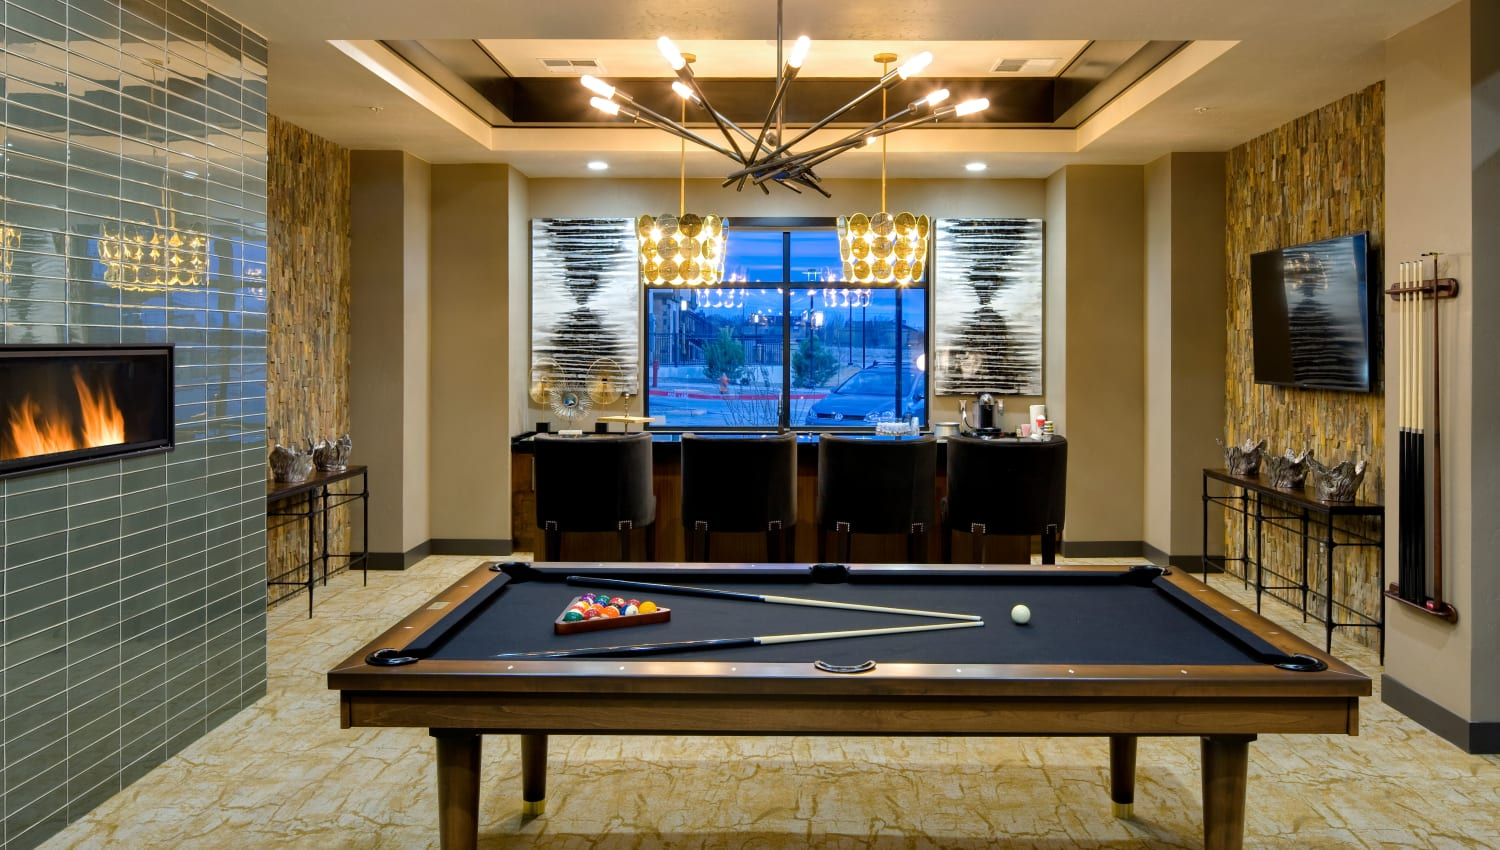 Community lounge with pool table and TV at Olympus Alameda in Albuquerque, New Mexico